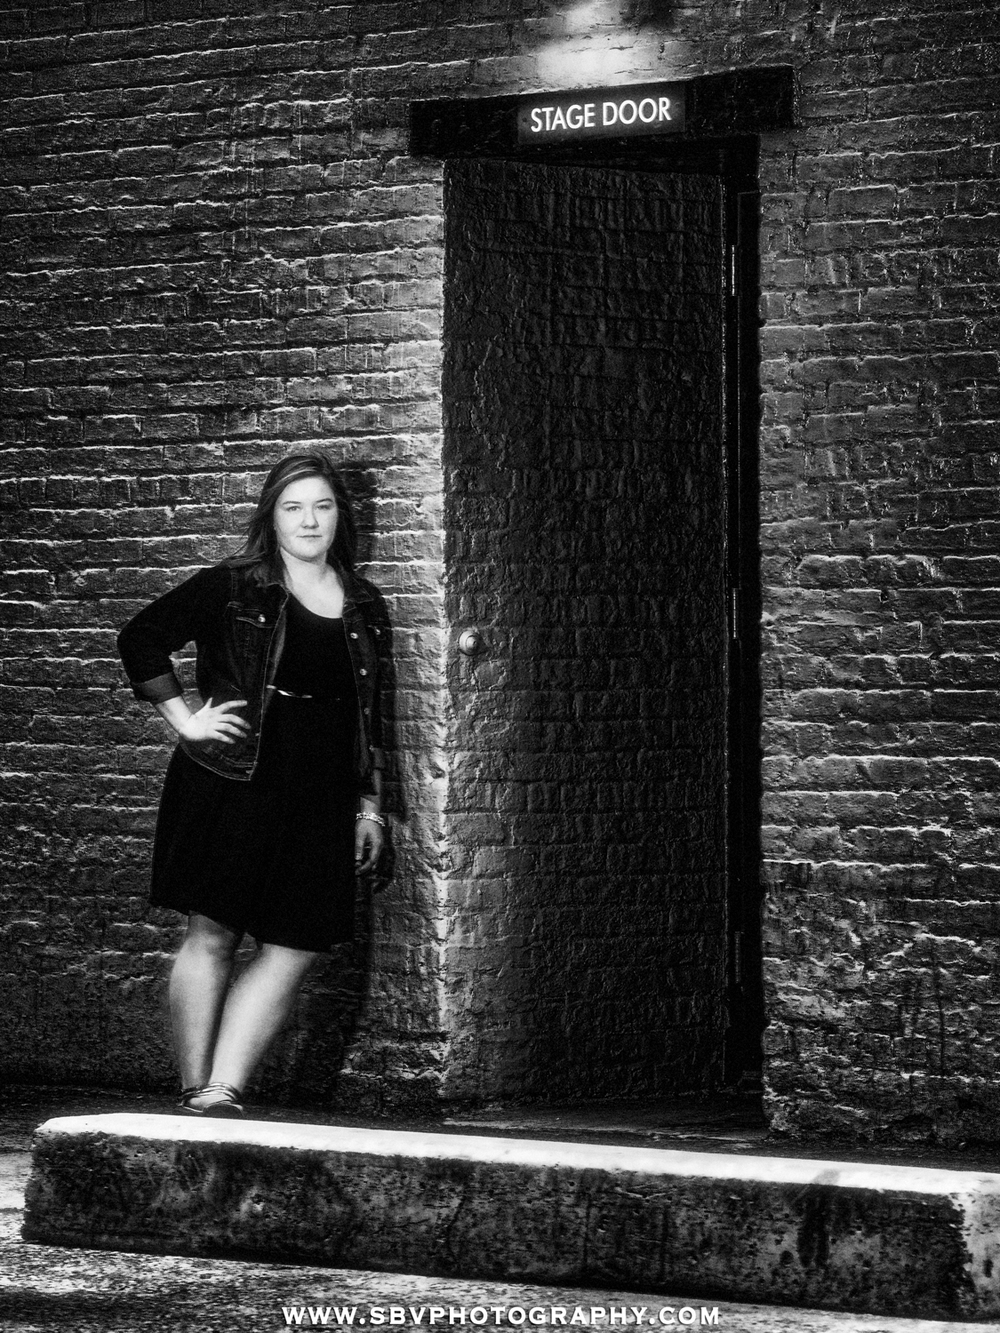 Edgy senior picture outside the Chicago Theater stage door.